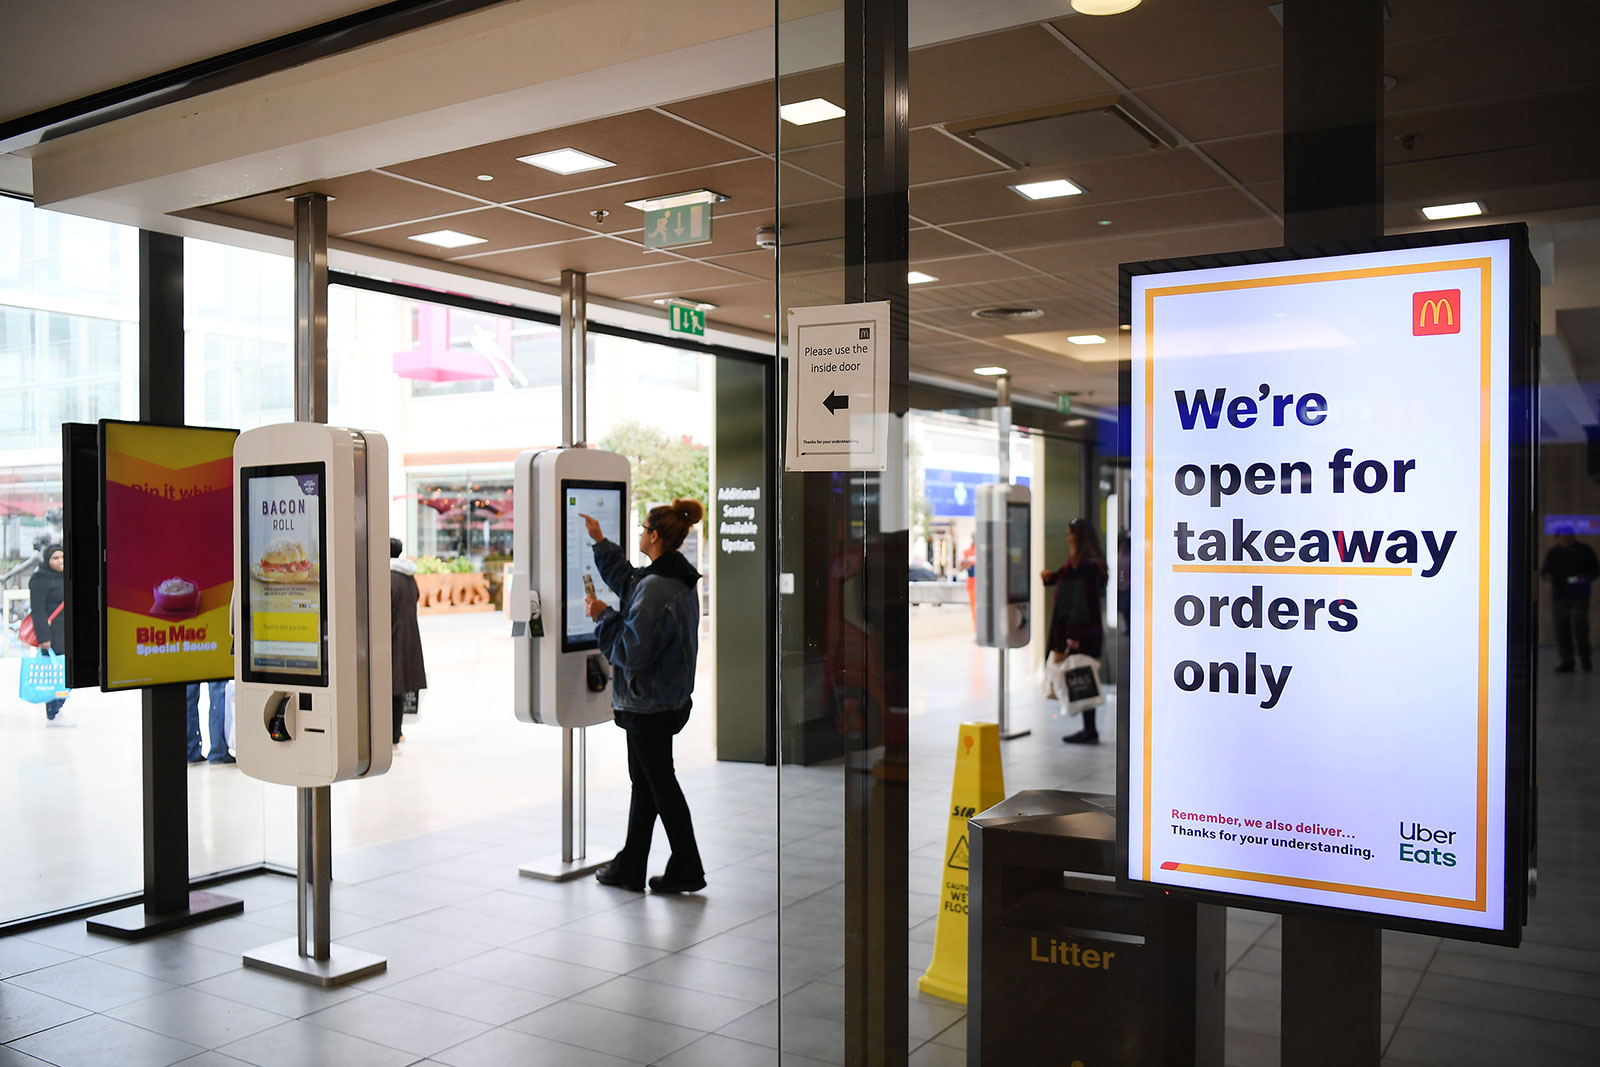 A customer orders from a self-service kiosk at a McDonald's in Milton Keynes, England, on March 20.